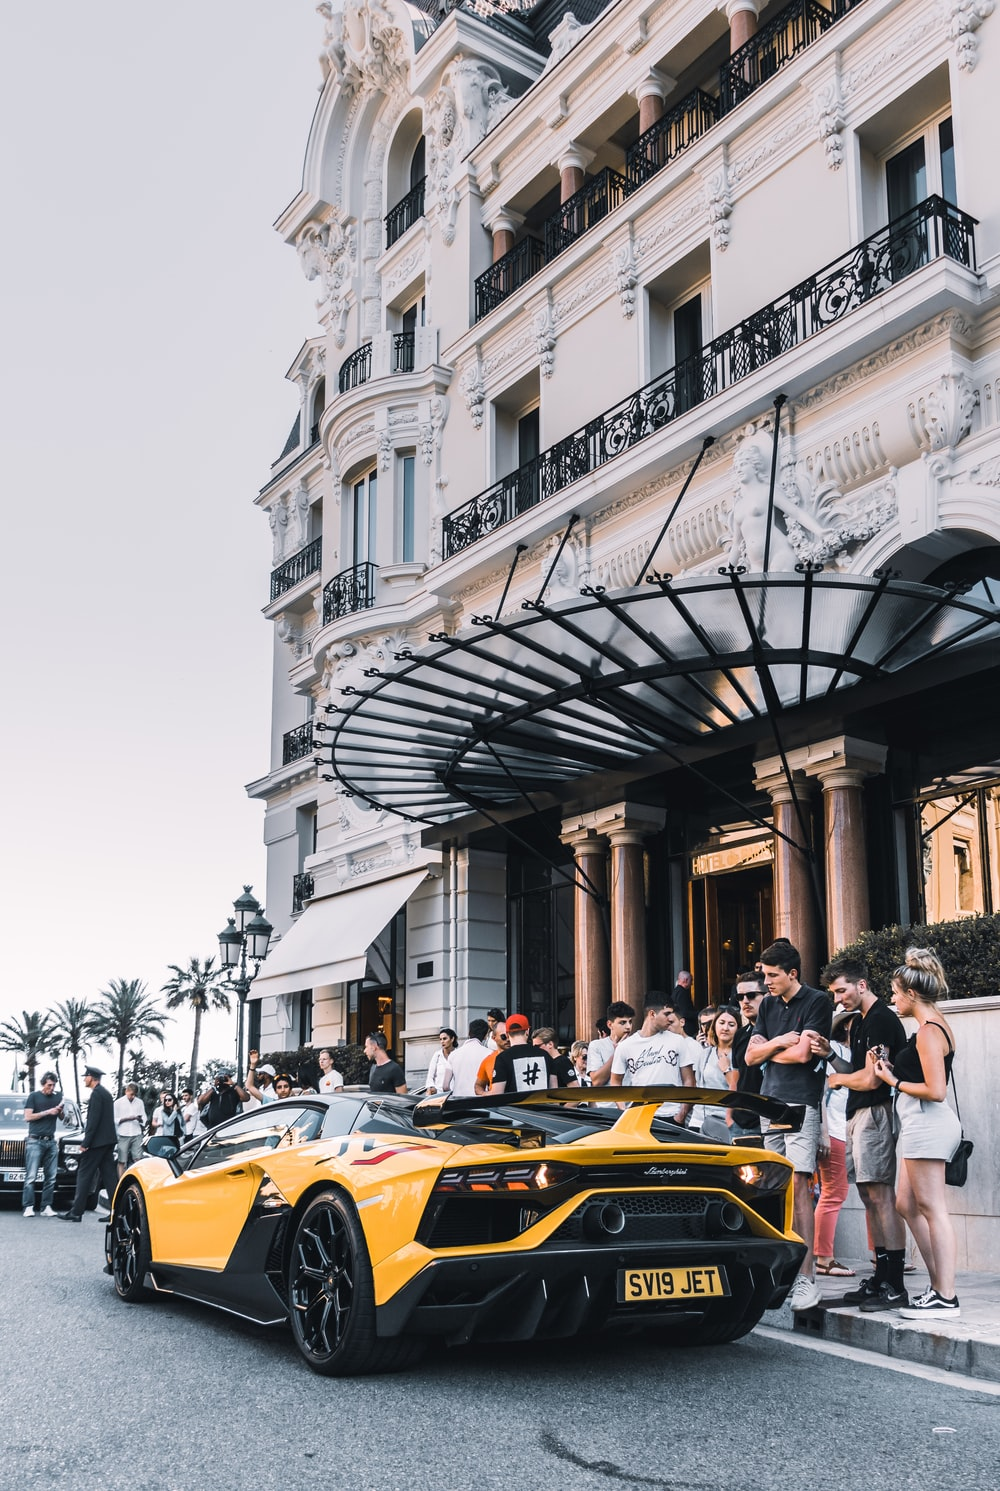 yellow sport car parked on street surrounded group of people